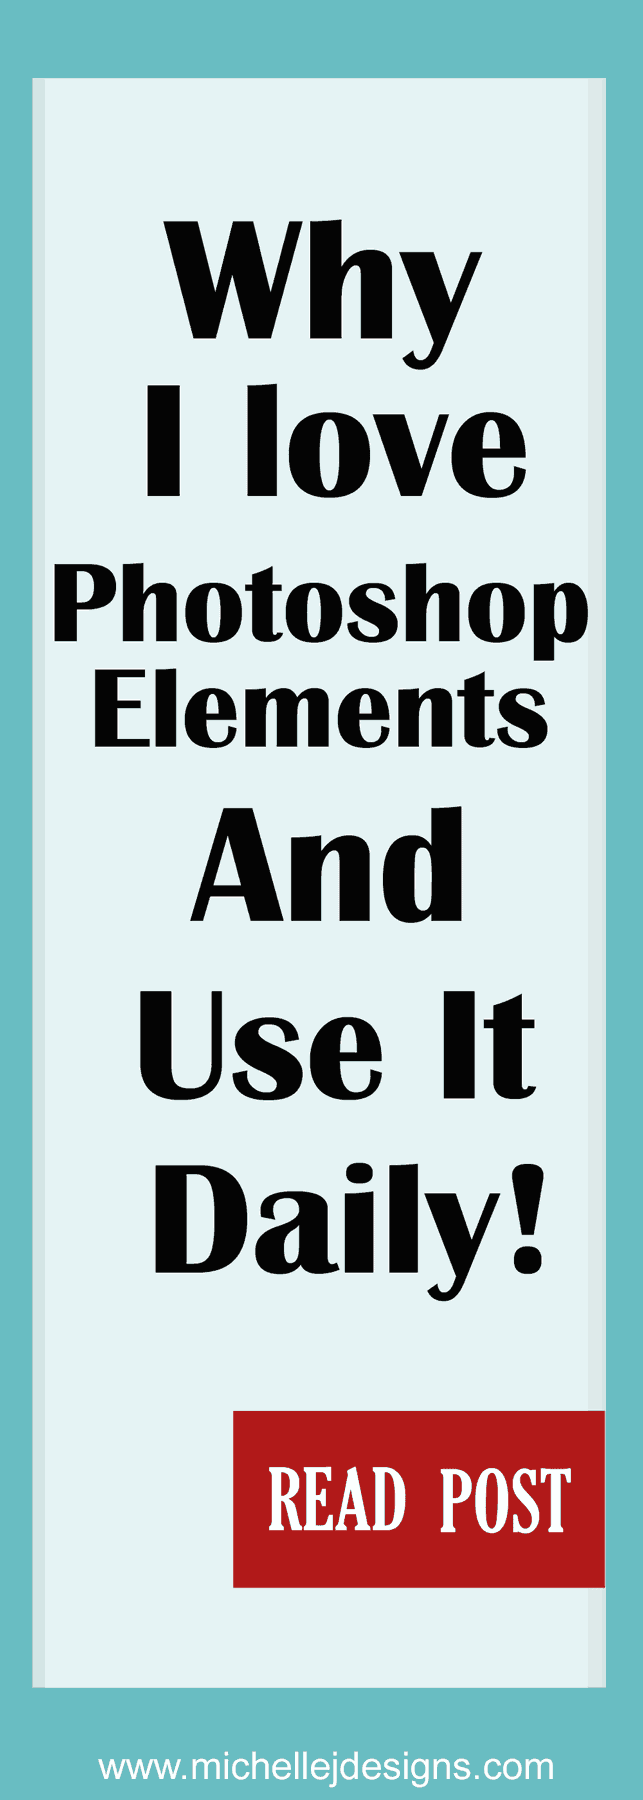 See how I consistently use Photoshop Elements in my blog and business to make money on a regular basis!